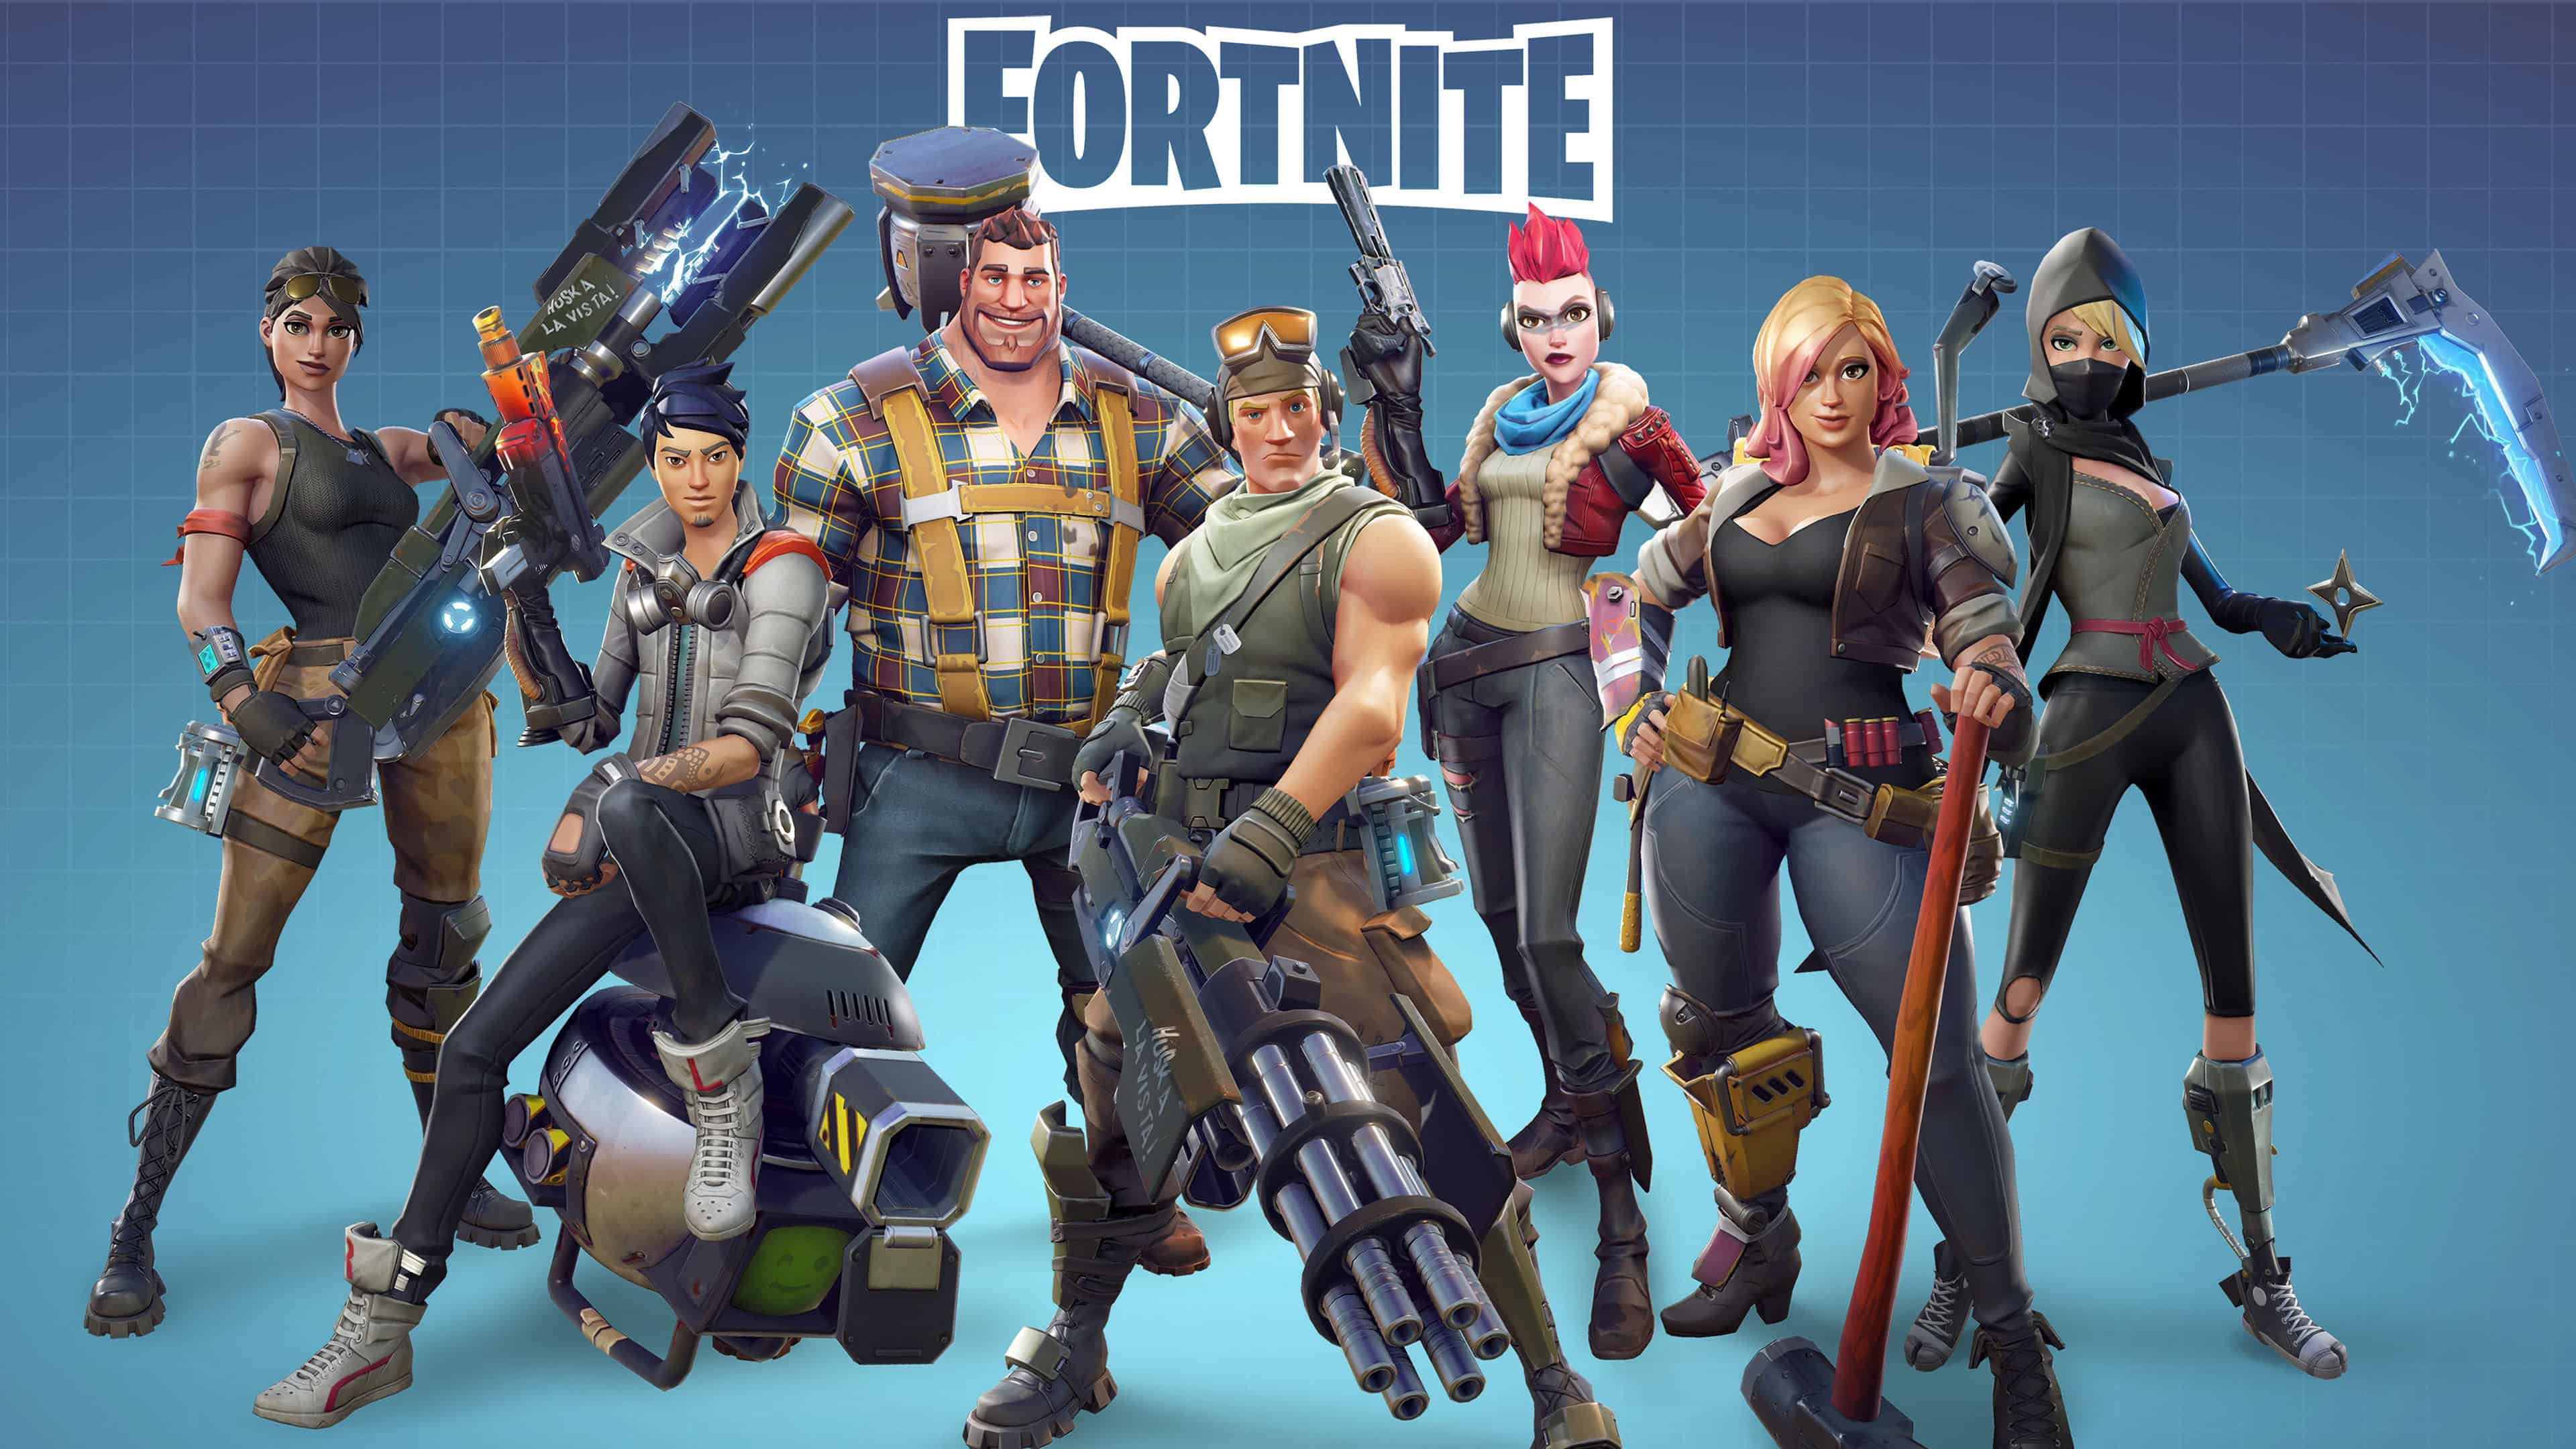 Fortnite Uhd 4k Wallpaper Pixelz